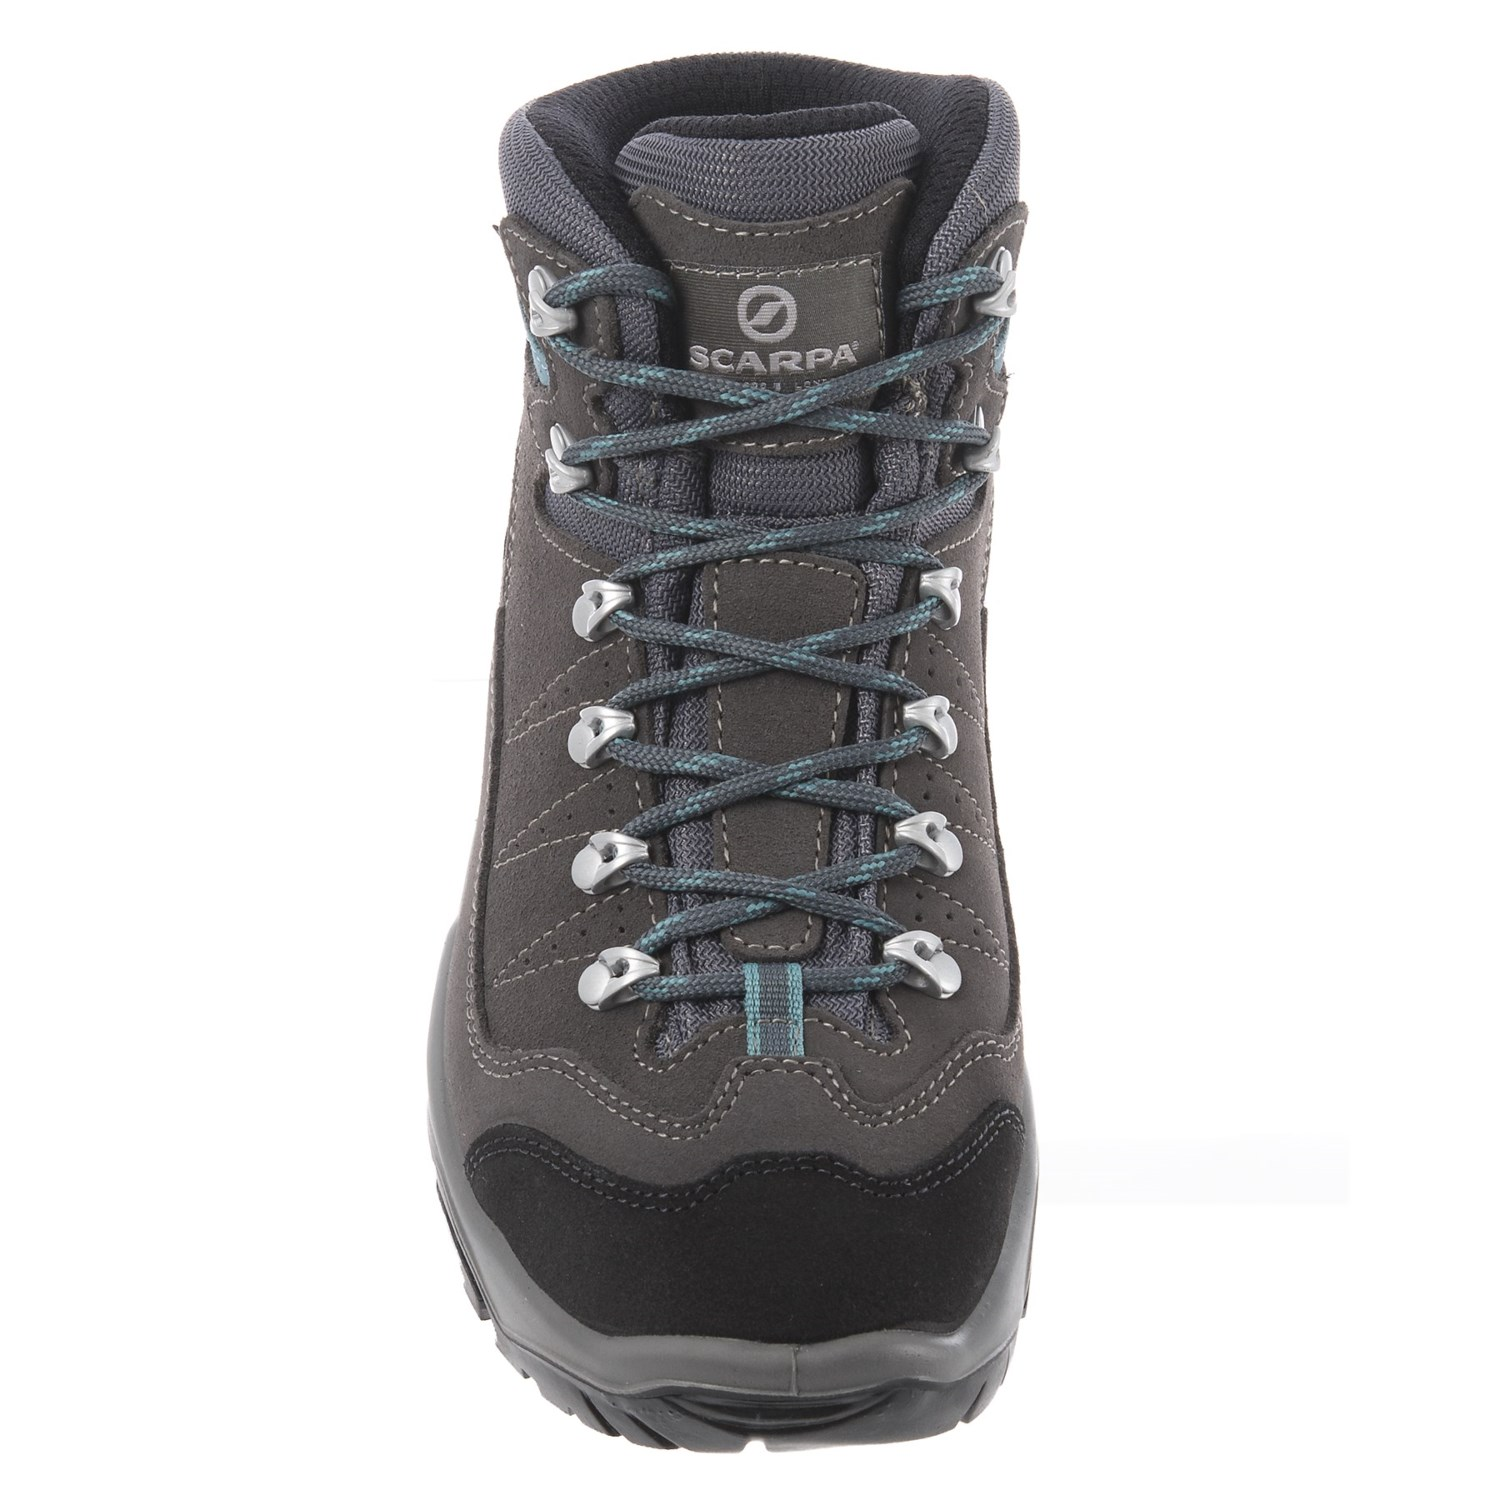 42a75f6b74c Scarpa Made in Europe Mistral Gore-Tex® Hiking Boots - Waterproof (For  Women)